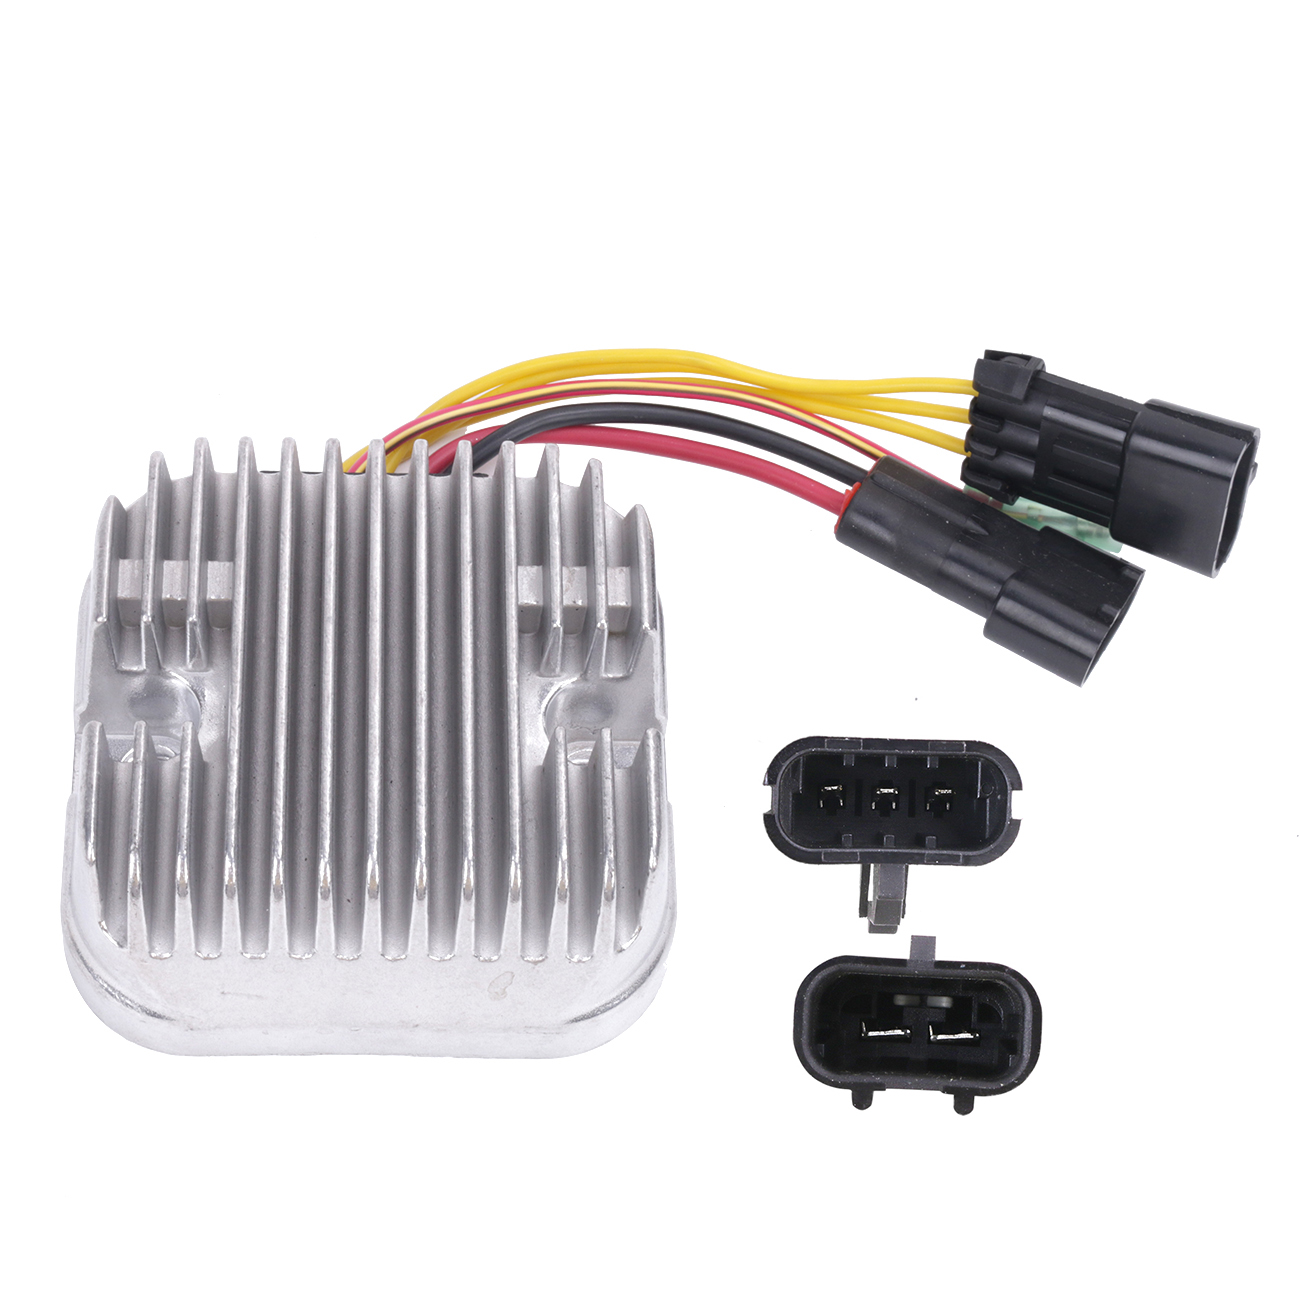 voltage regulator rectifier for polaris atv utv ranger sportsman rzr 800 improved ref 4012748 motorcycle part accessory case [ 1300 x 1300 Pixel ]